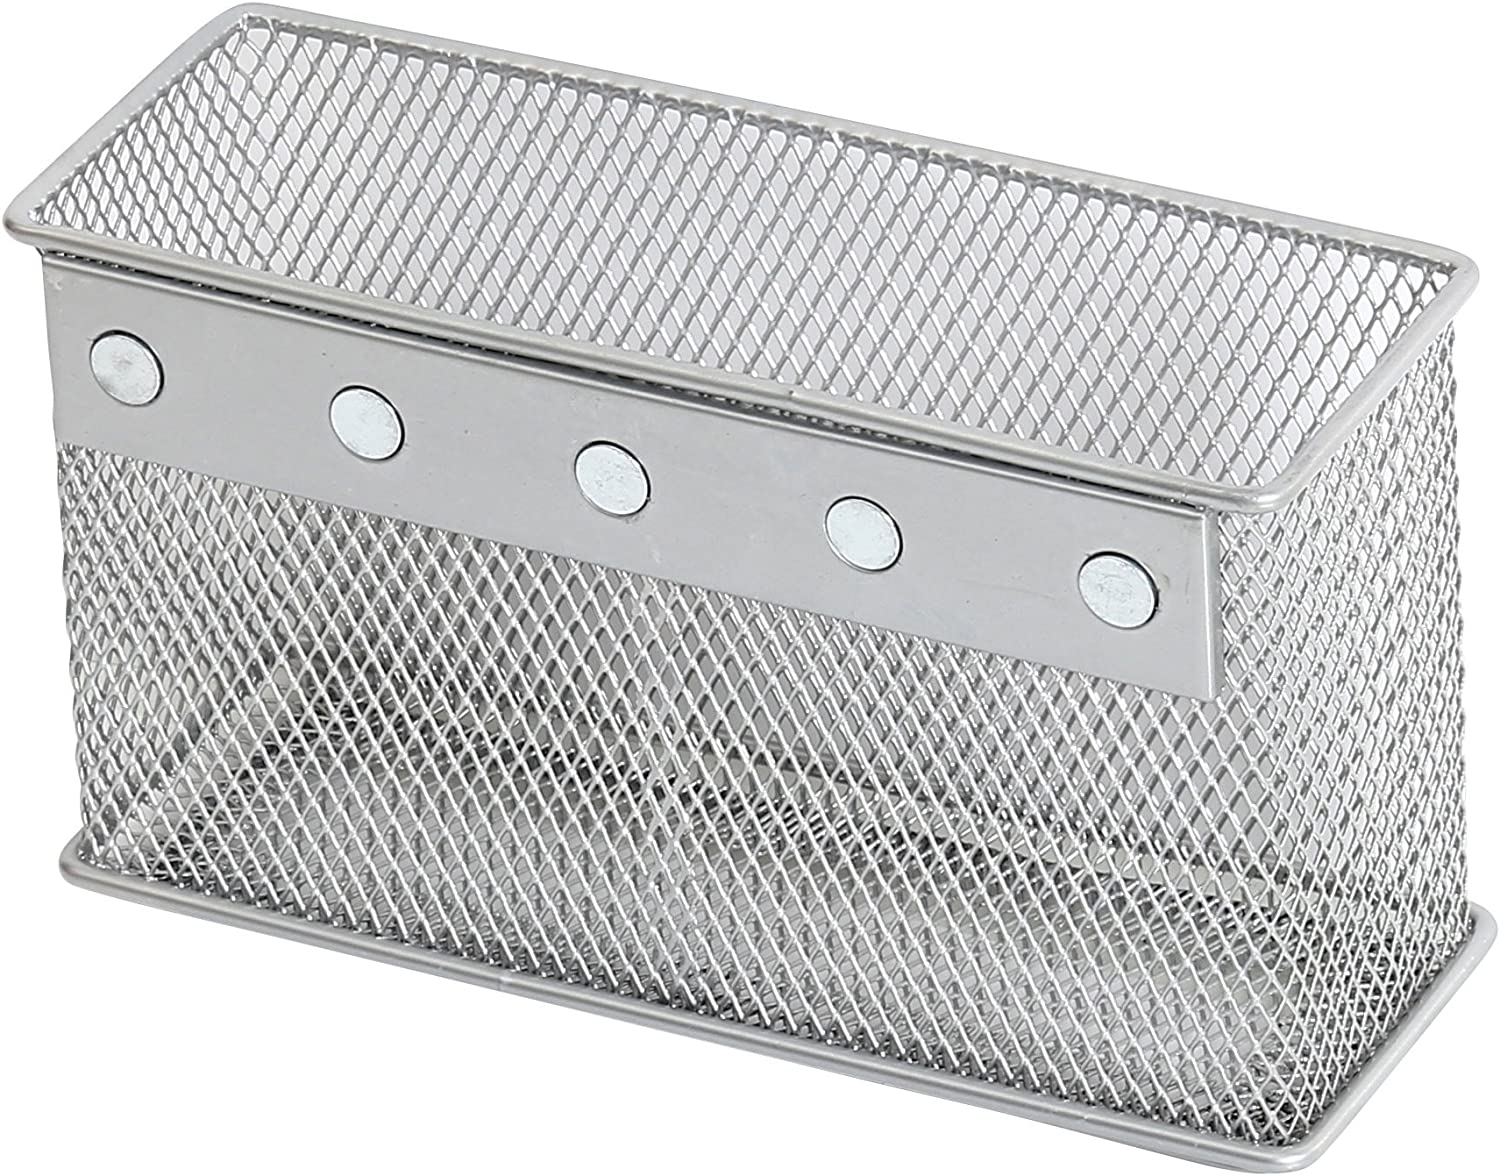 Ybmhome Wire Mesh Magnetic Storage Basket, Container, Desk Tray, Office Supply Accessory Organizer Silver for Refrigerator/Microwave Oven or Magnetic Surface in Kitchen or Office 2306 (1, Medium)